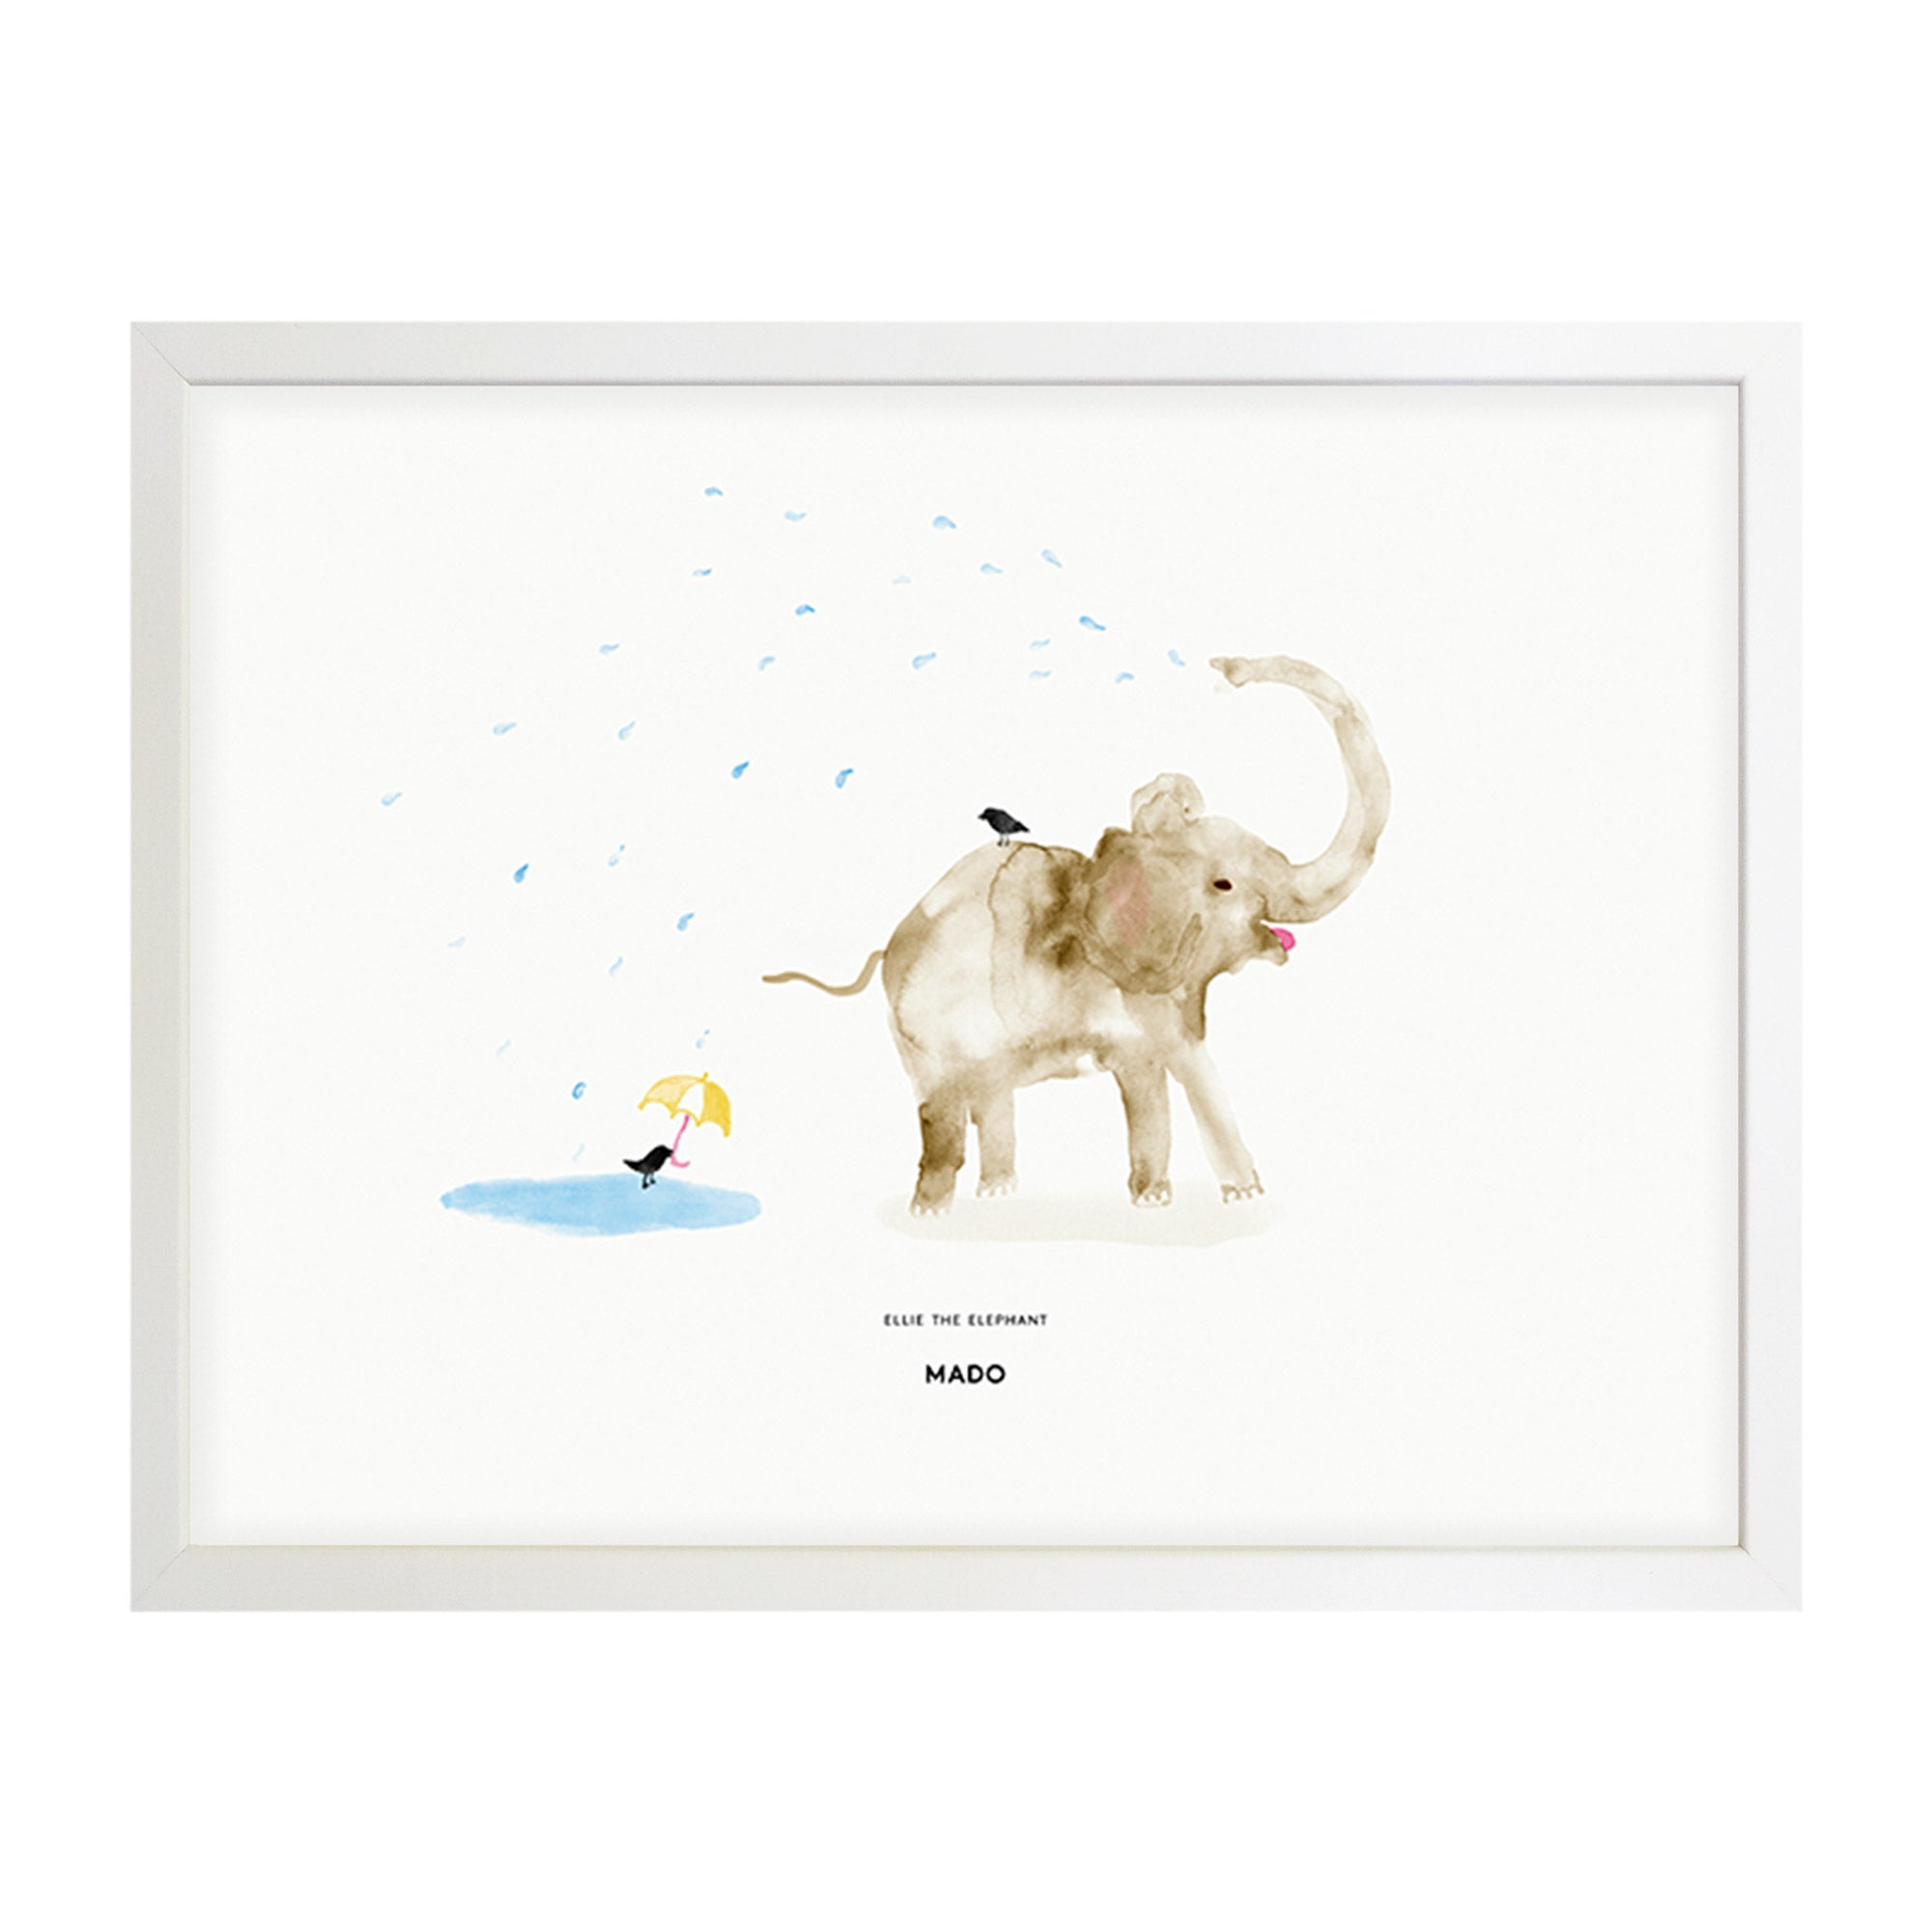 Art Print - Ellie the Elephant - MADO - NZ Stockist - Mado Stockist - Shop Online Now - Paper Plane